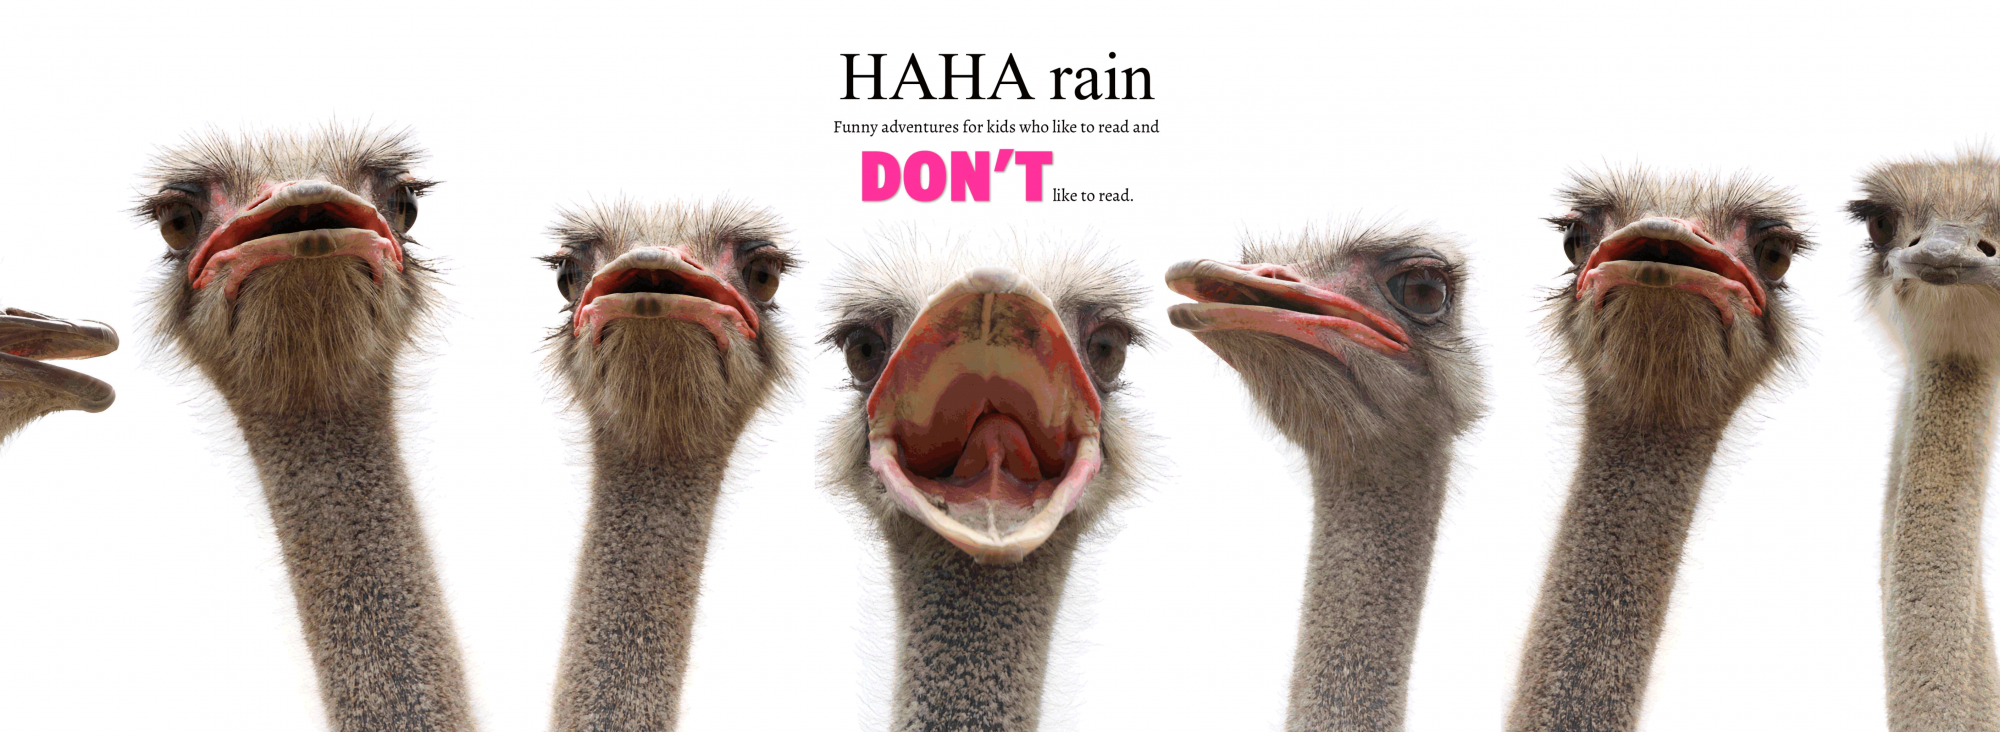 HAHA rain - Funny adventures for kids who like to read and don't like to read